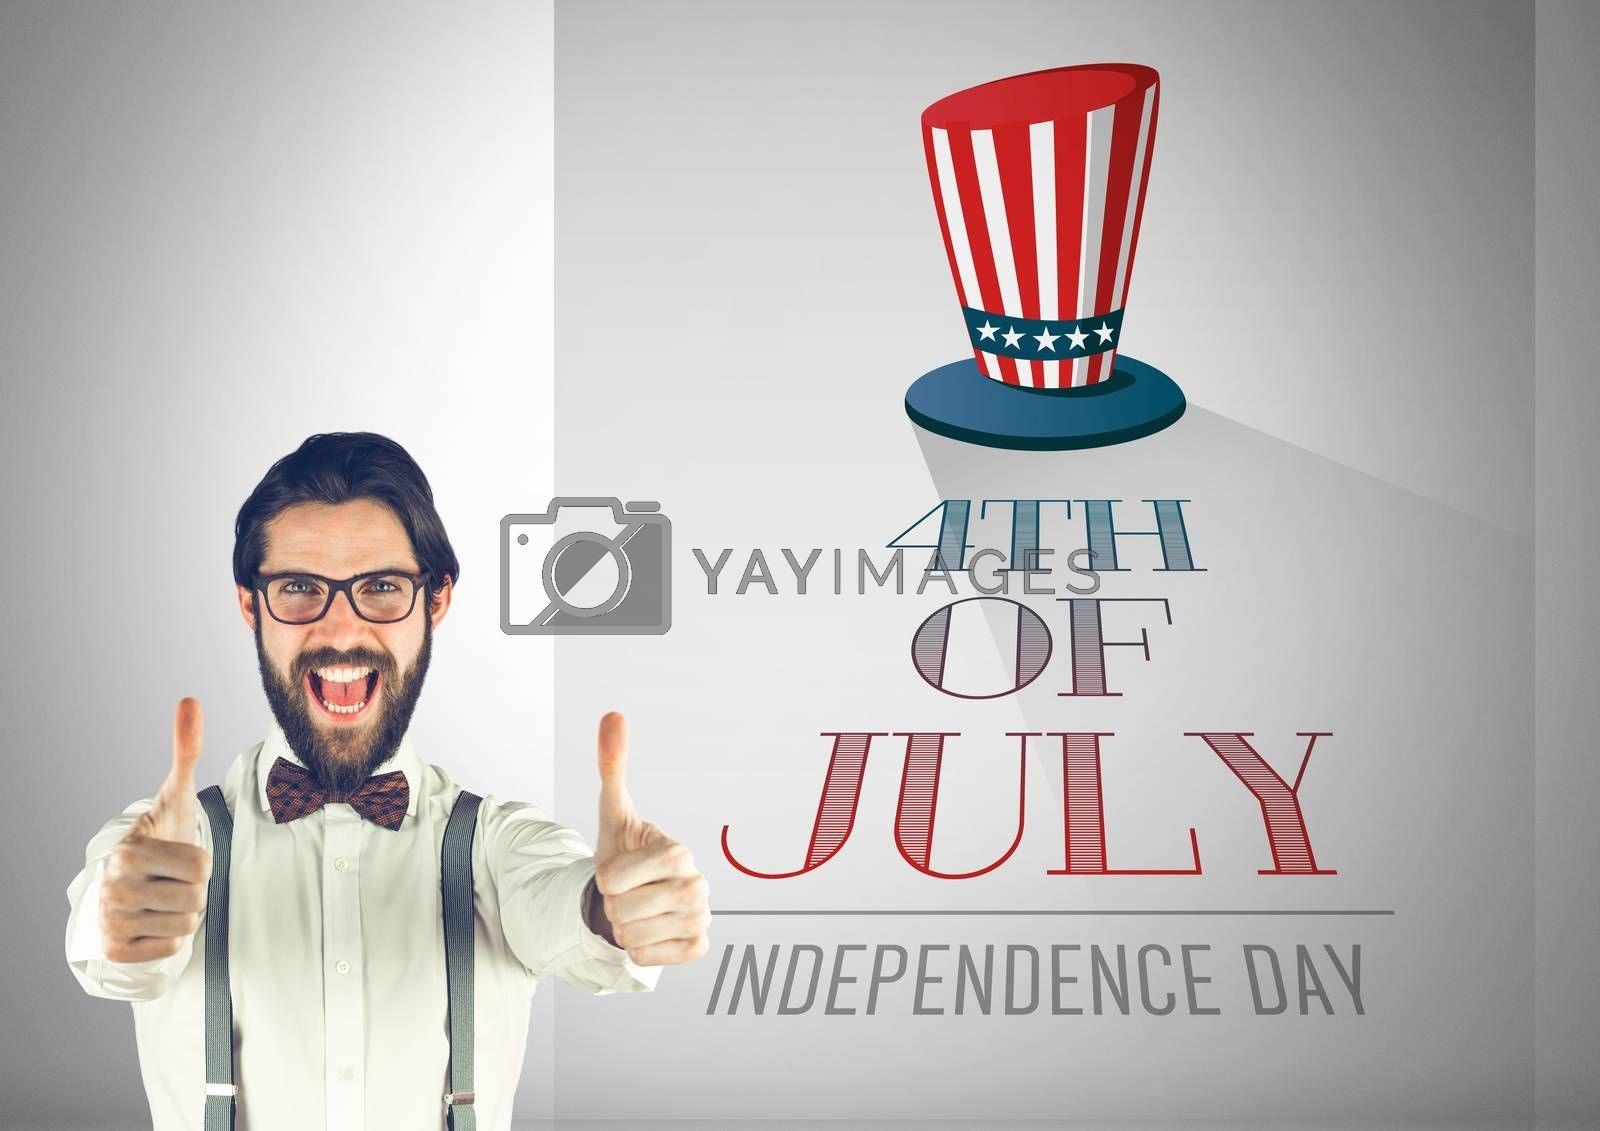 Digital composite of Business man with thumbs up against illustration for the 4th of july